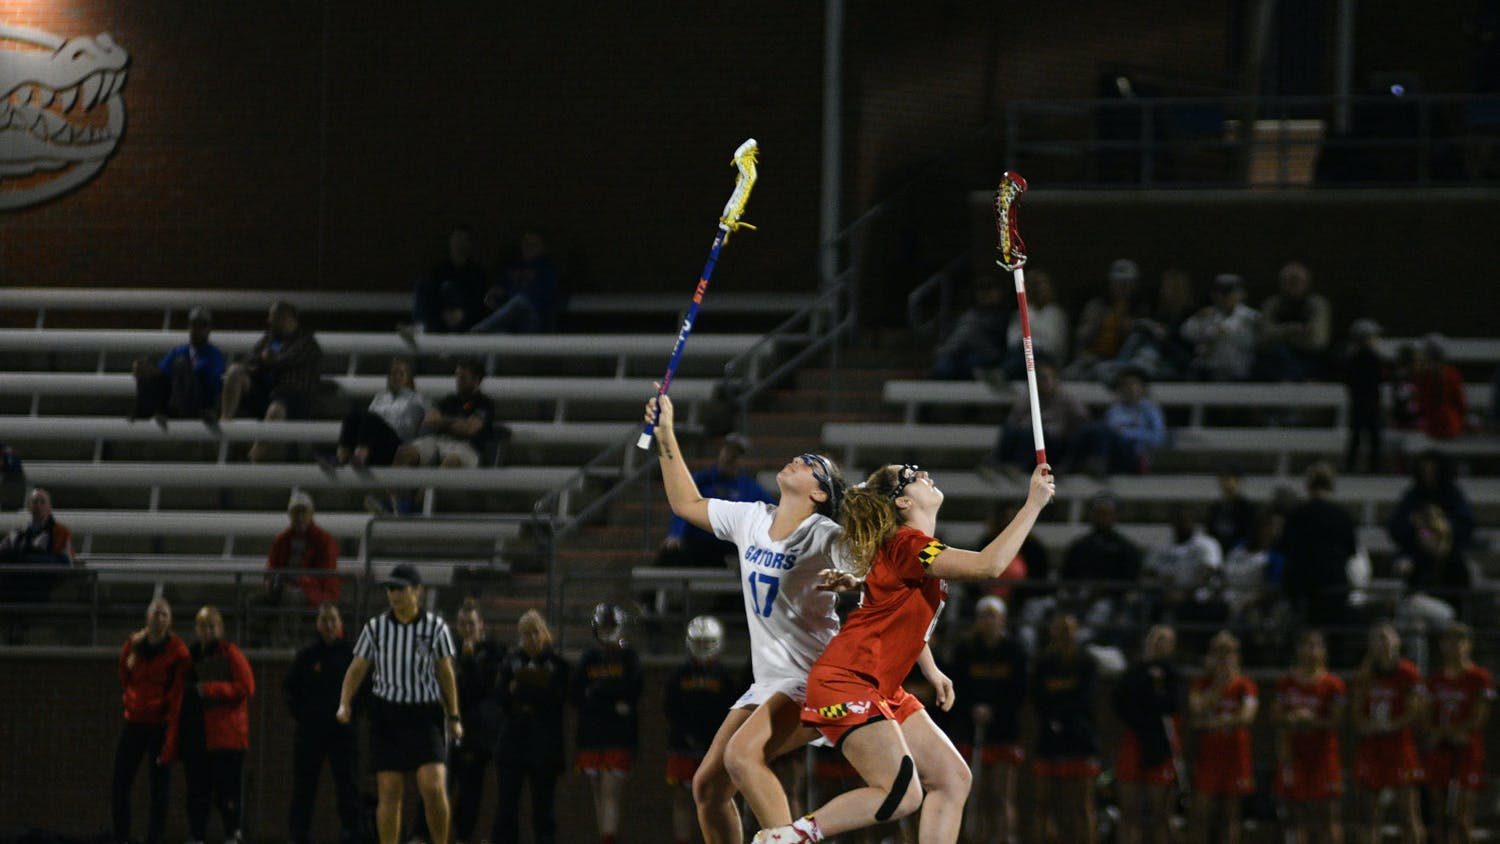 """Florida midfielder Shannon Kavanagh (left) is second on the Gators with 24 draw controls this season and is the main option for the draw circle. """"The draw circle is where the game is won and lost, for the most part,"""" coach Amanda O'Leary said."""